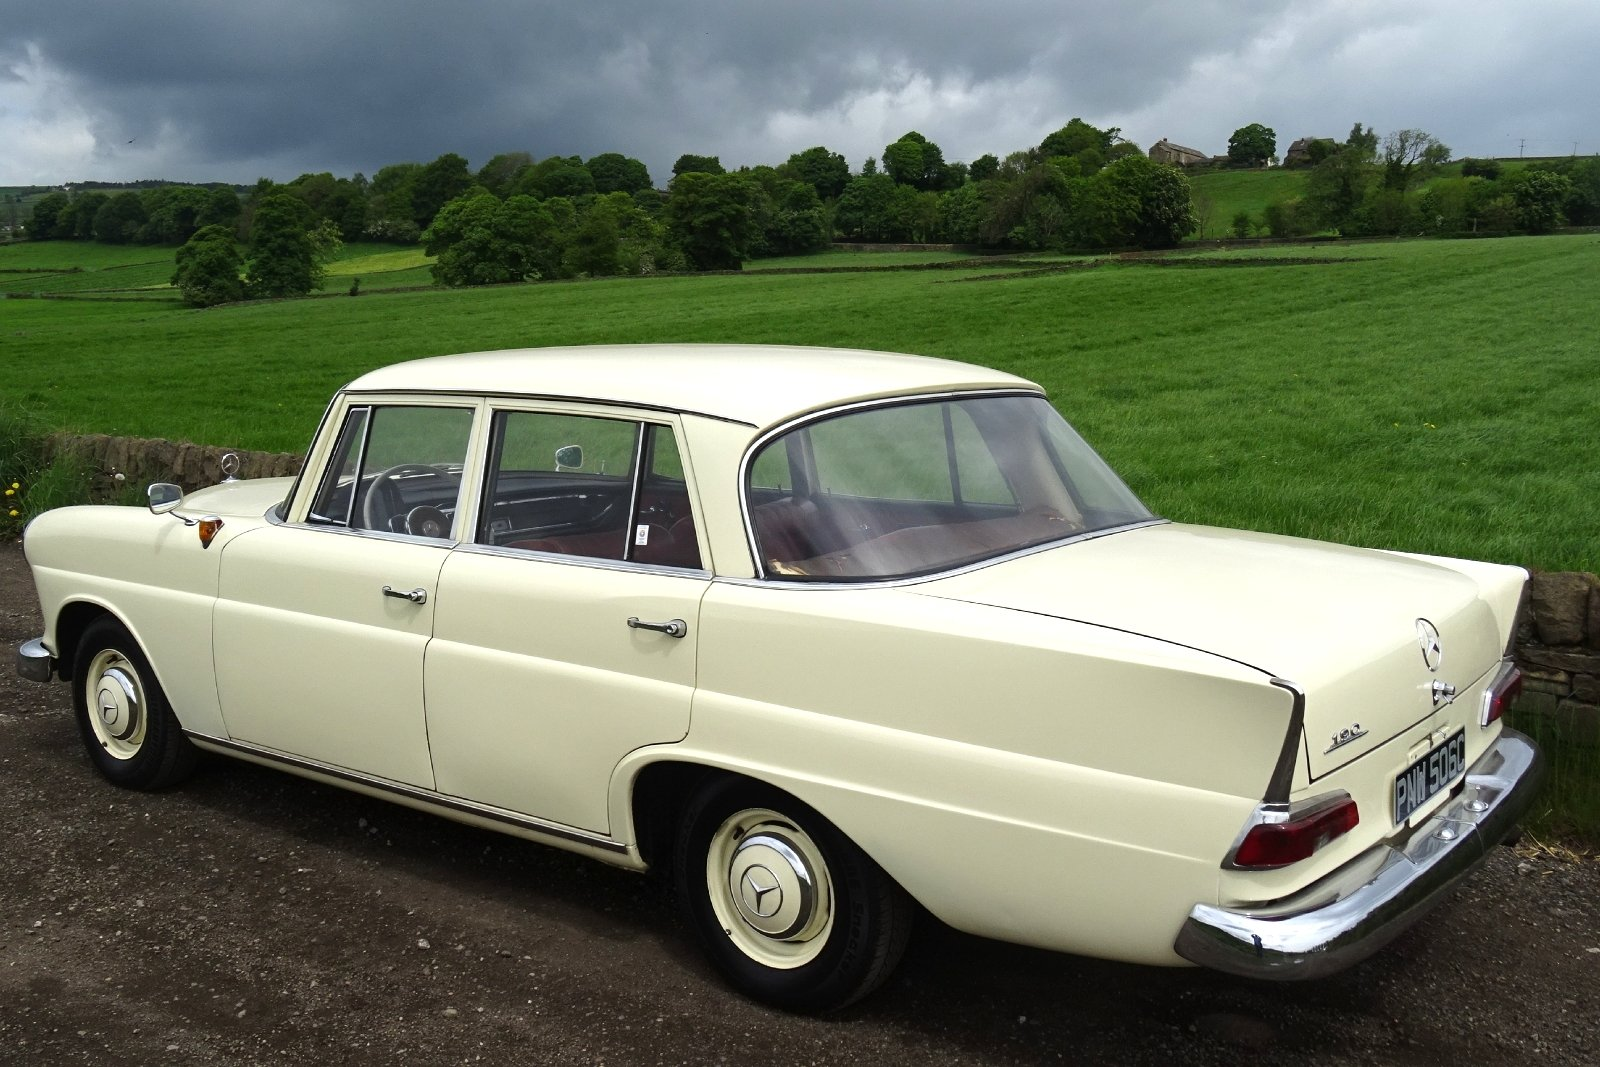 1965 MERCEDES 190 FINTAIL SALOON SOLID BODY BEAUTIFUL INTERIOR SOLD (picture 4 of 6)